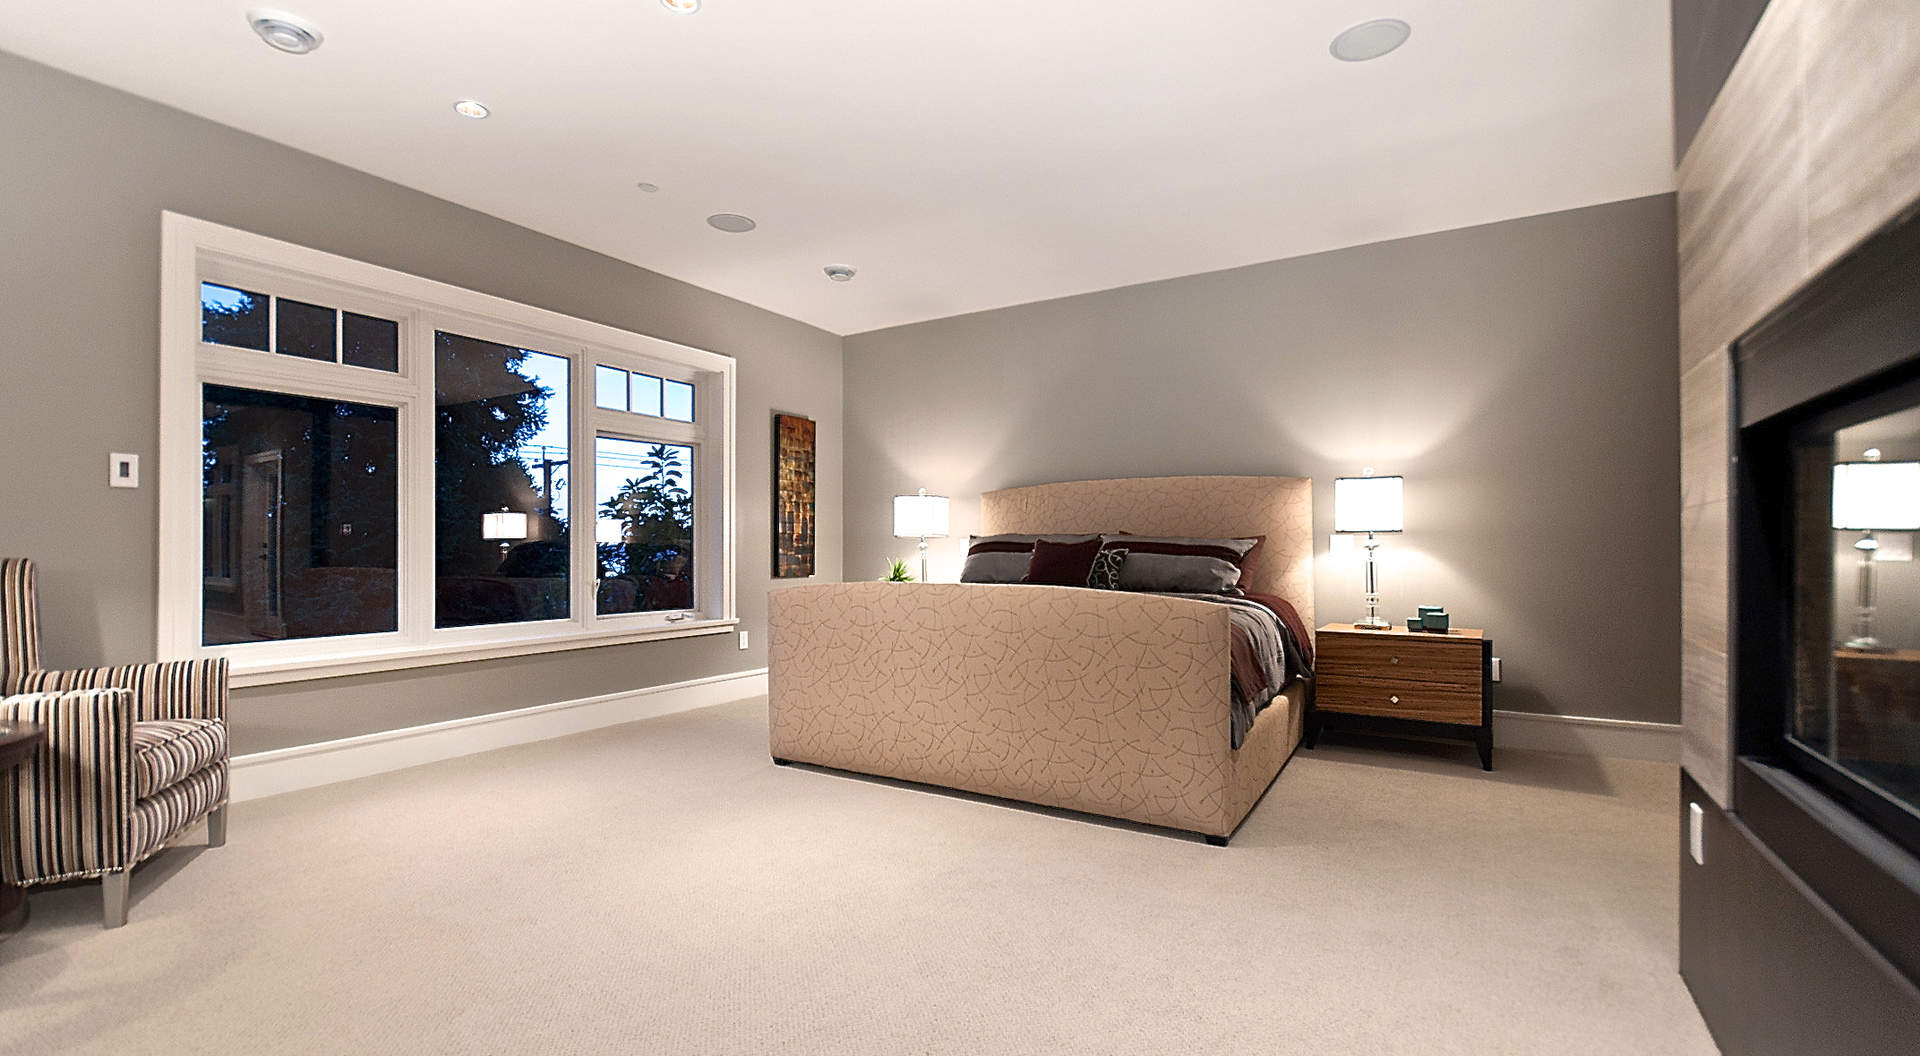 Spacious Master Bedroom with Roaring Fireplace